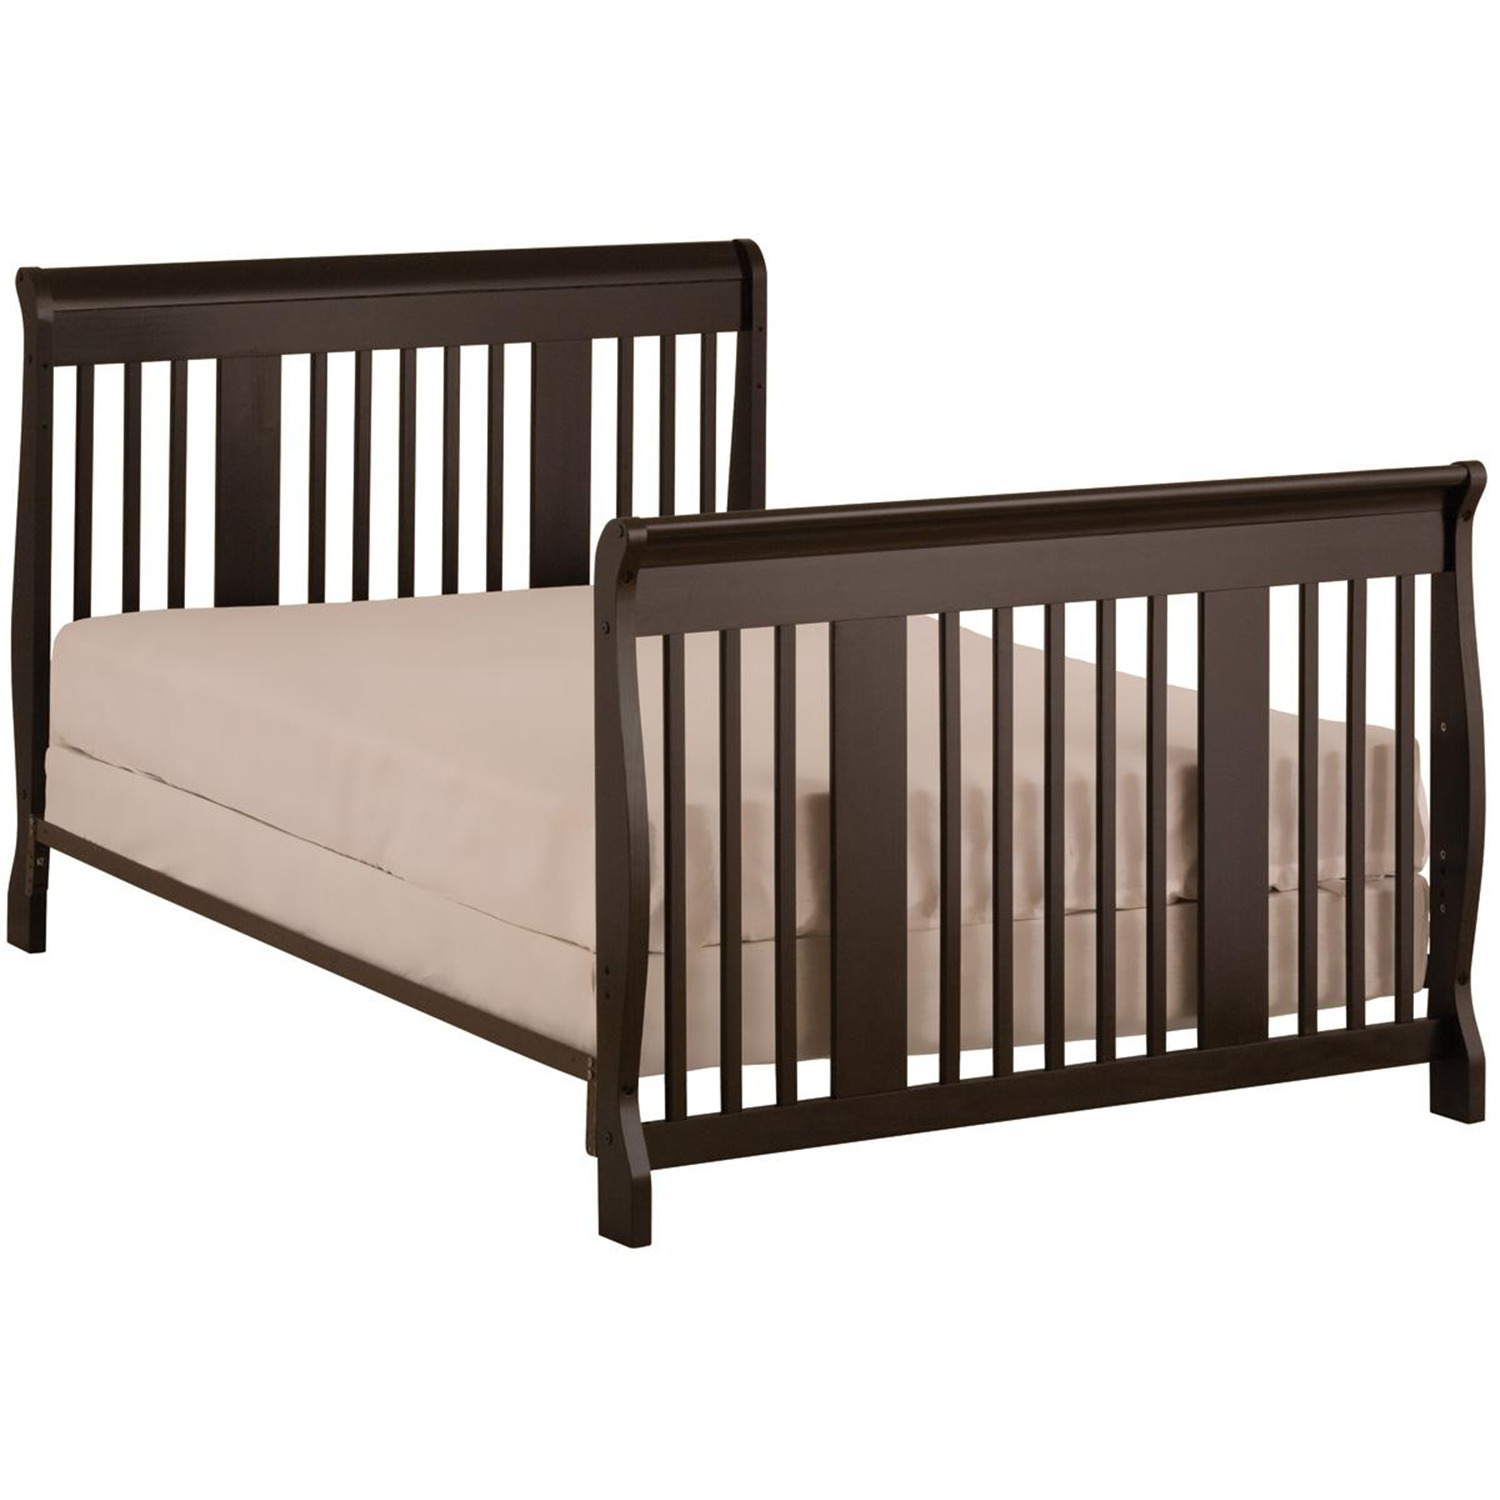 Superbe Stork Craft Tuscany 4 In 1 Fixed Side Convertible Crib   From $260.55 To  $304.99 | OJCommerce